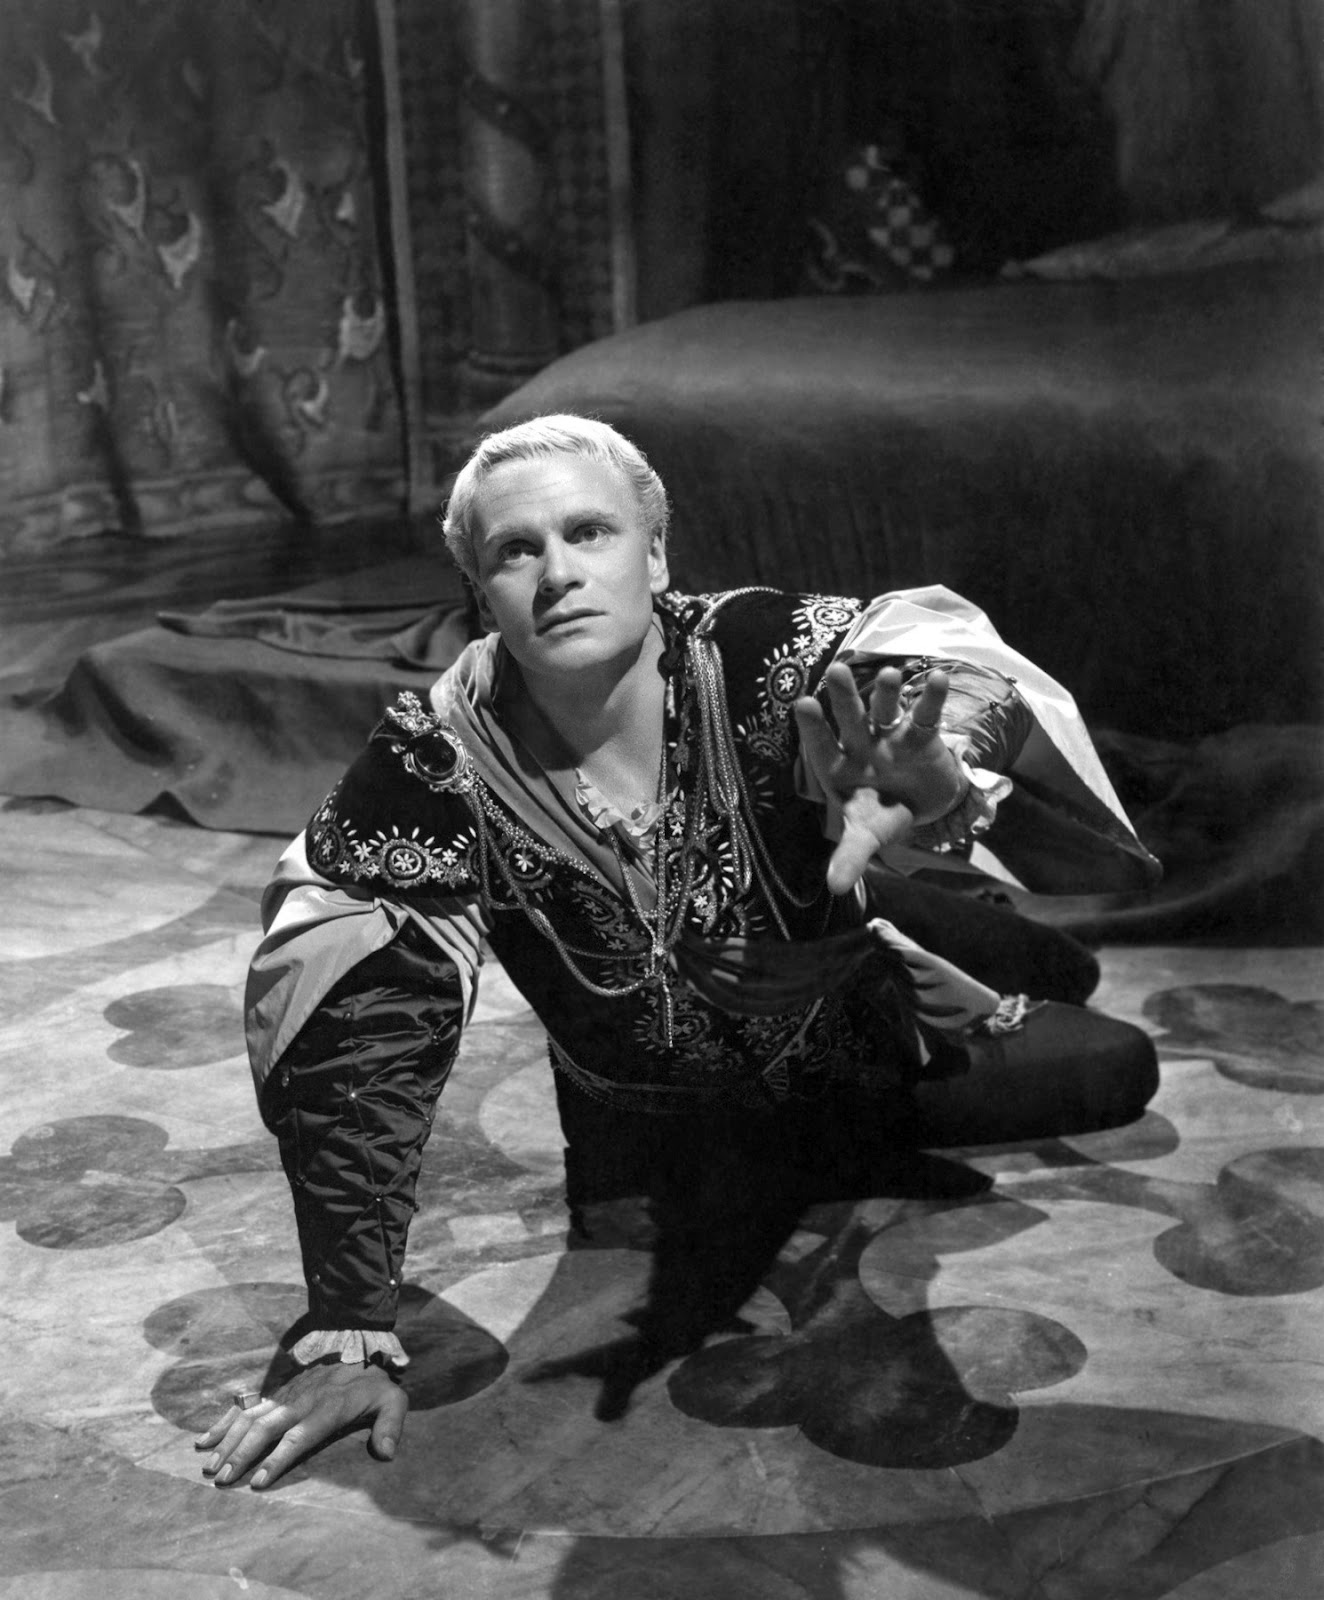 hamlet what is the appeal to Nick's hamlet appeal mavericktheatre loading unsubscribe from mavericktheatre cancel unsubscribe working subscribe subscribed unsubscribe 8.